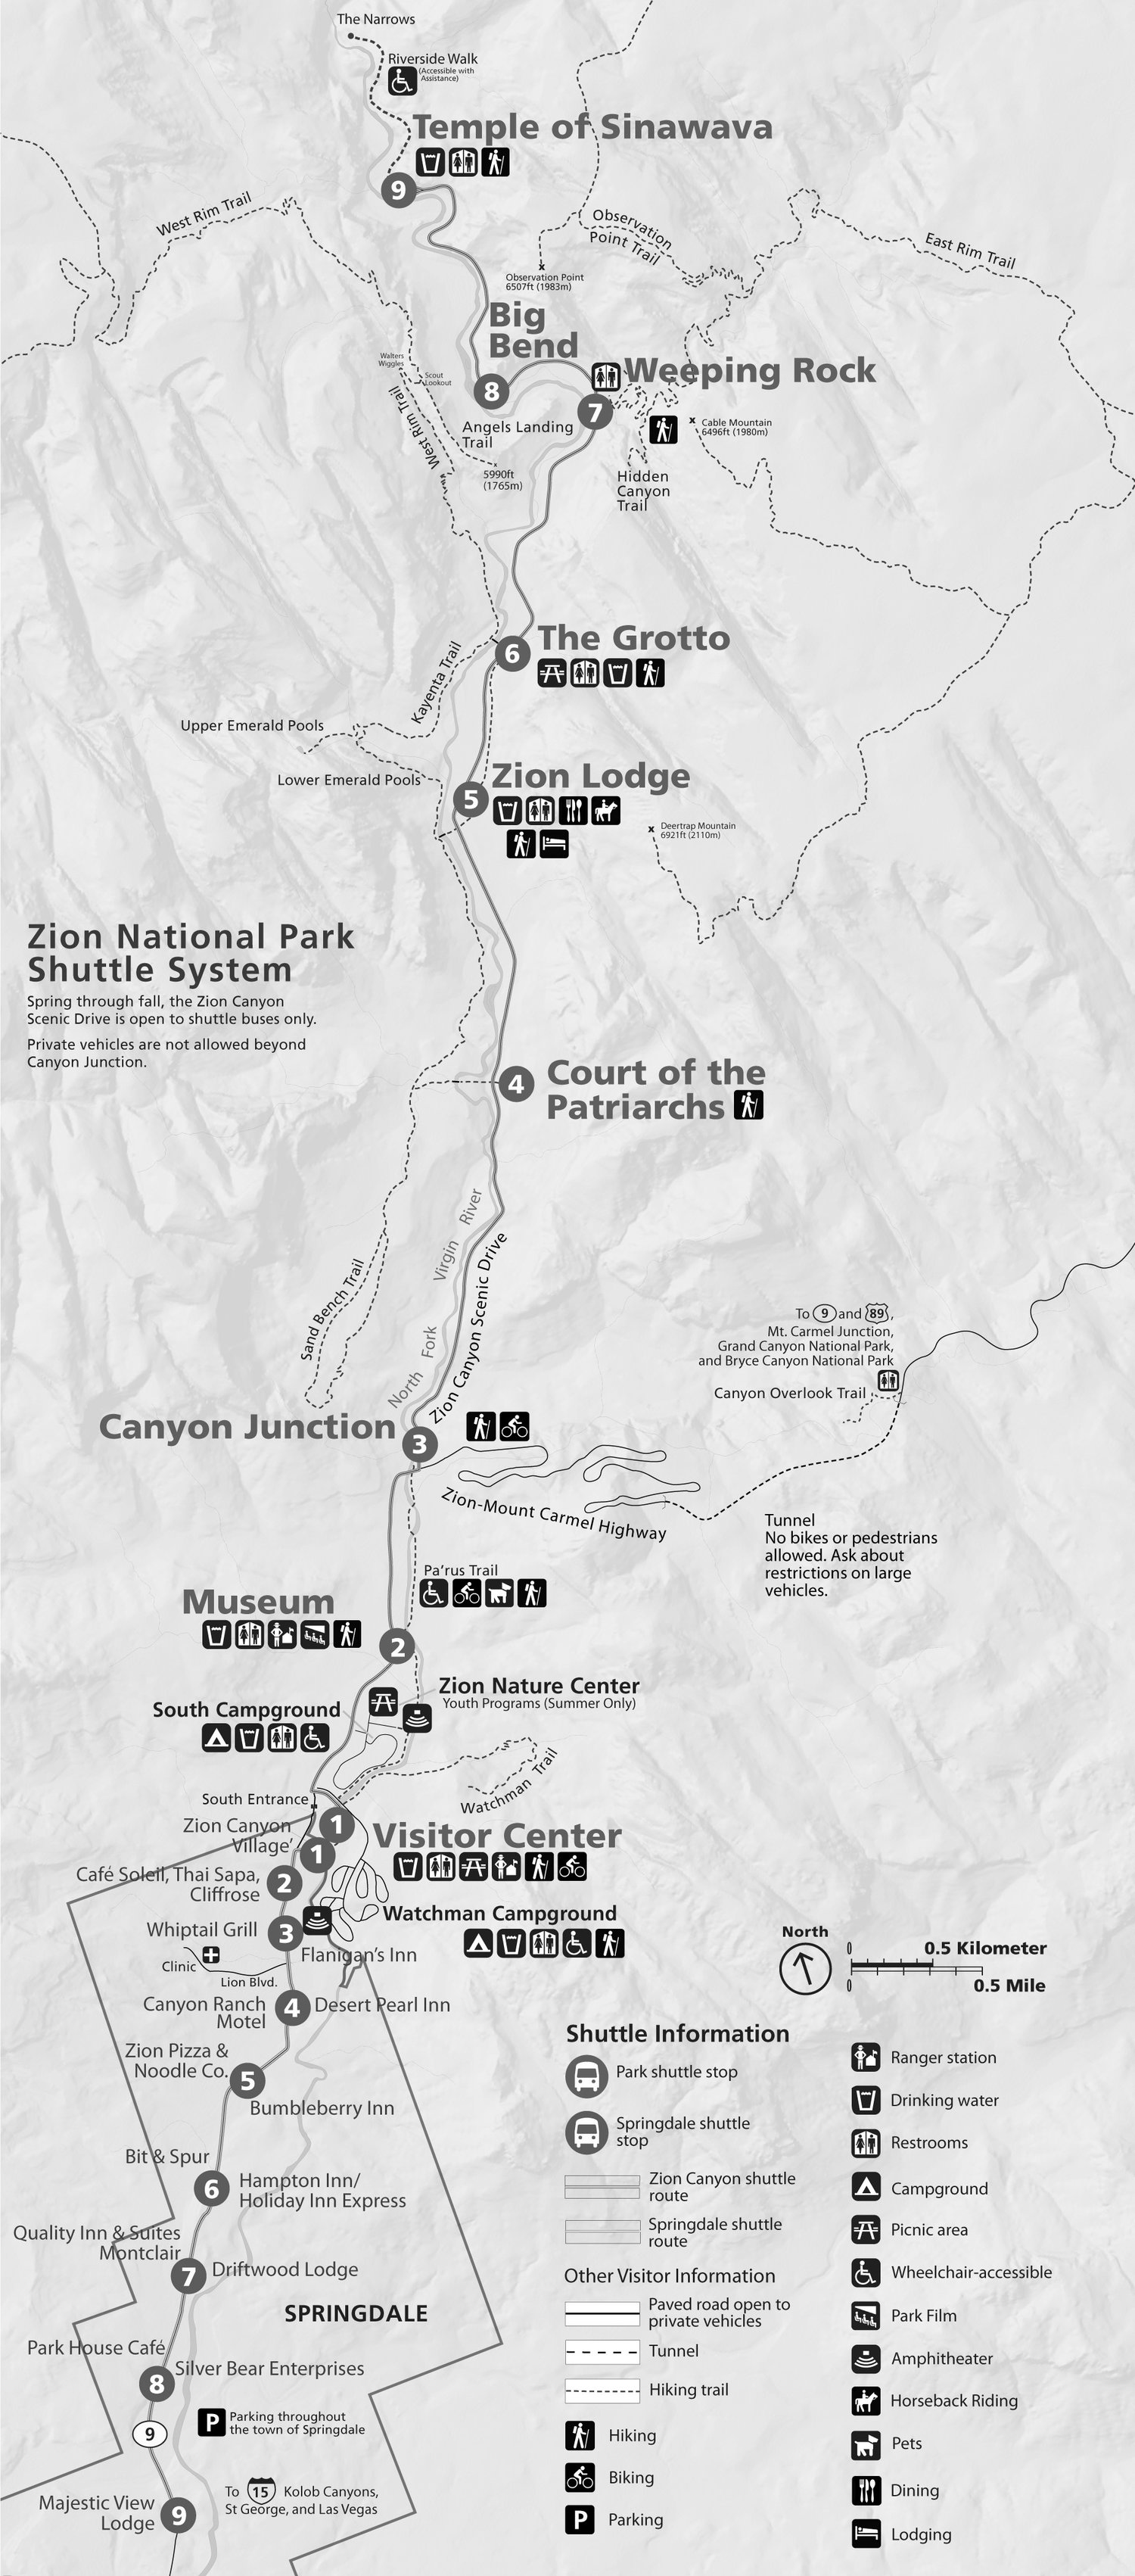 Trailhead Shuttle Map & Schedule for Springdale & Zion Canyon on westmont map, bryce canyon map, arches national park map, black canyon of the gunnison map, armageddon map, coral pink sand dunes map, denali map, grand staircase escalante national monument map, deerfield map, grand canyon trail map, gilgal map, ravinia map, the narrows map, fairfield map, naval station great lakes map, ancient israel map, gates of the arctic map, evanston map, woodstock map, dekalb map,